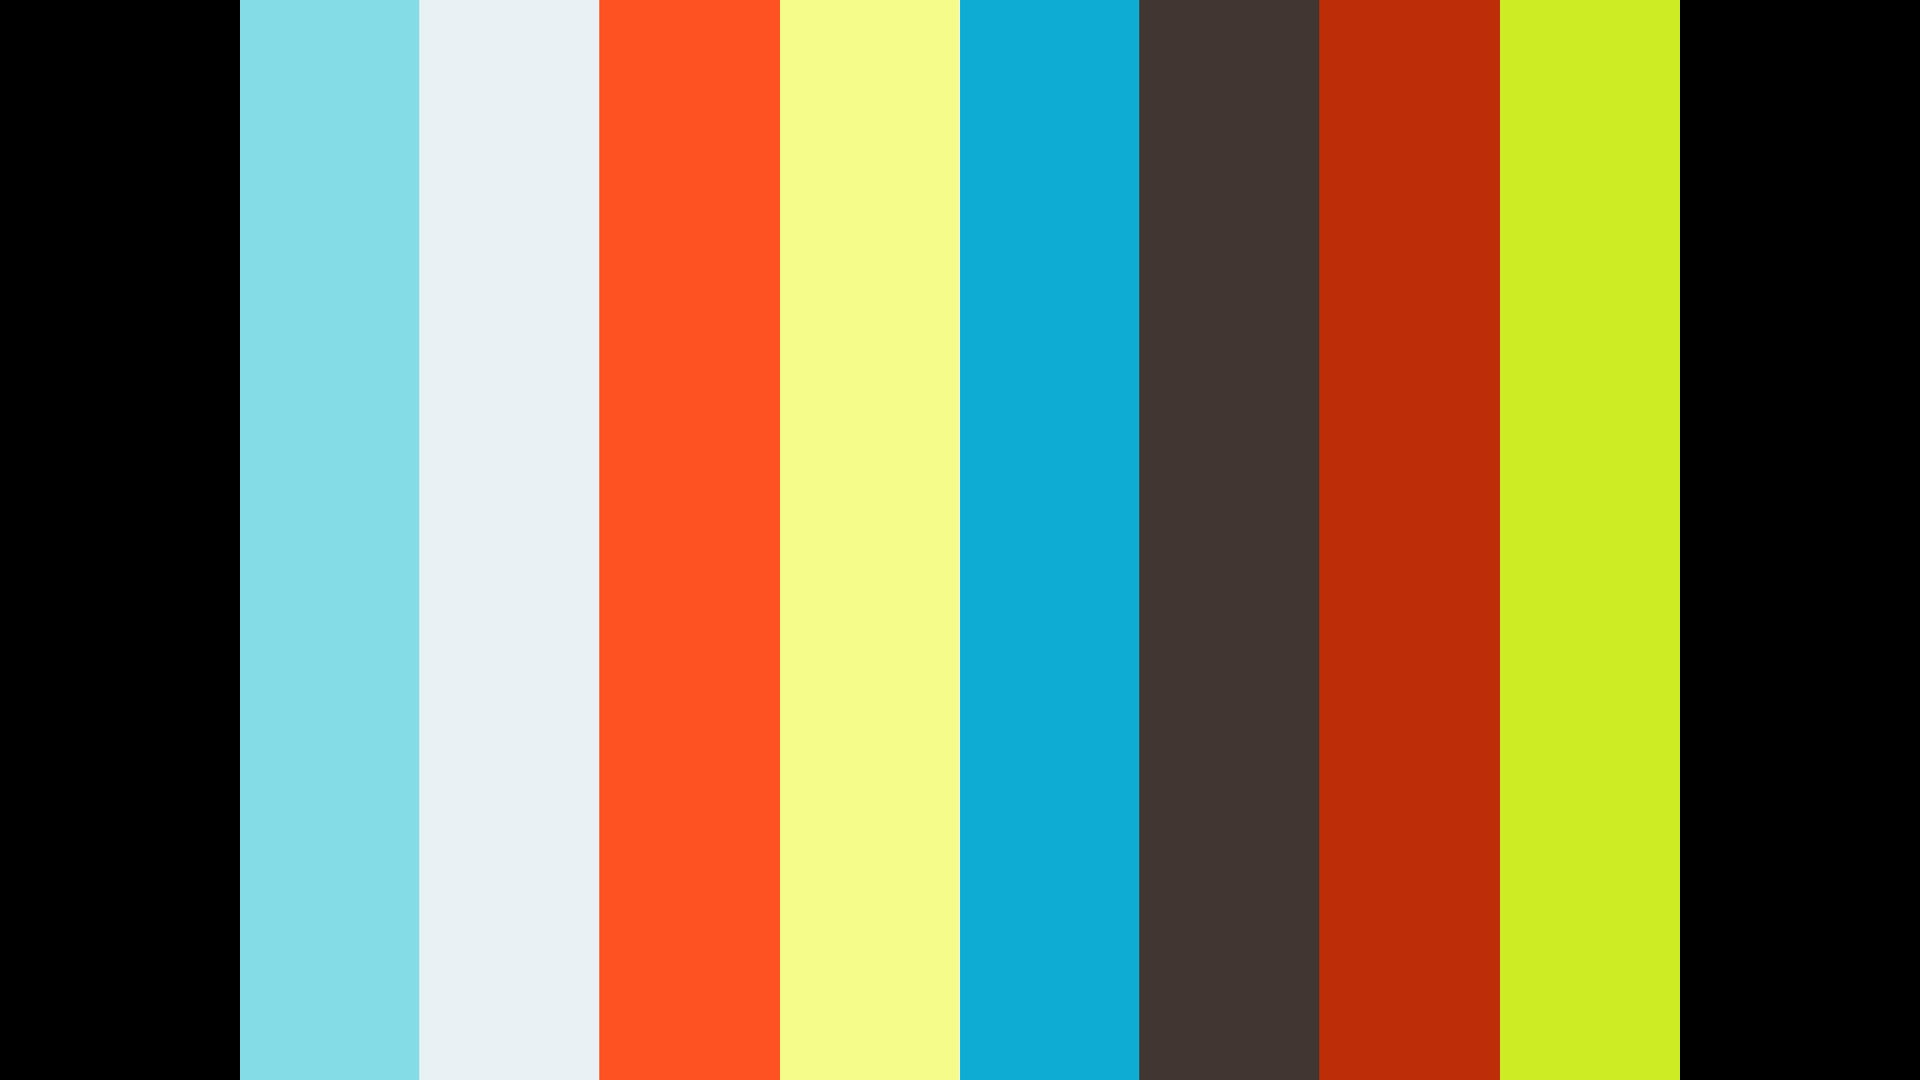 FashionLab New Official Video - ENGLISH Subtitles